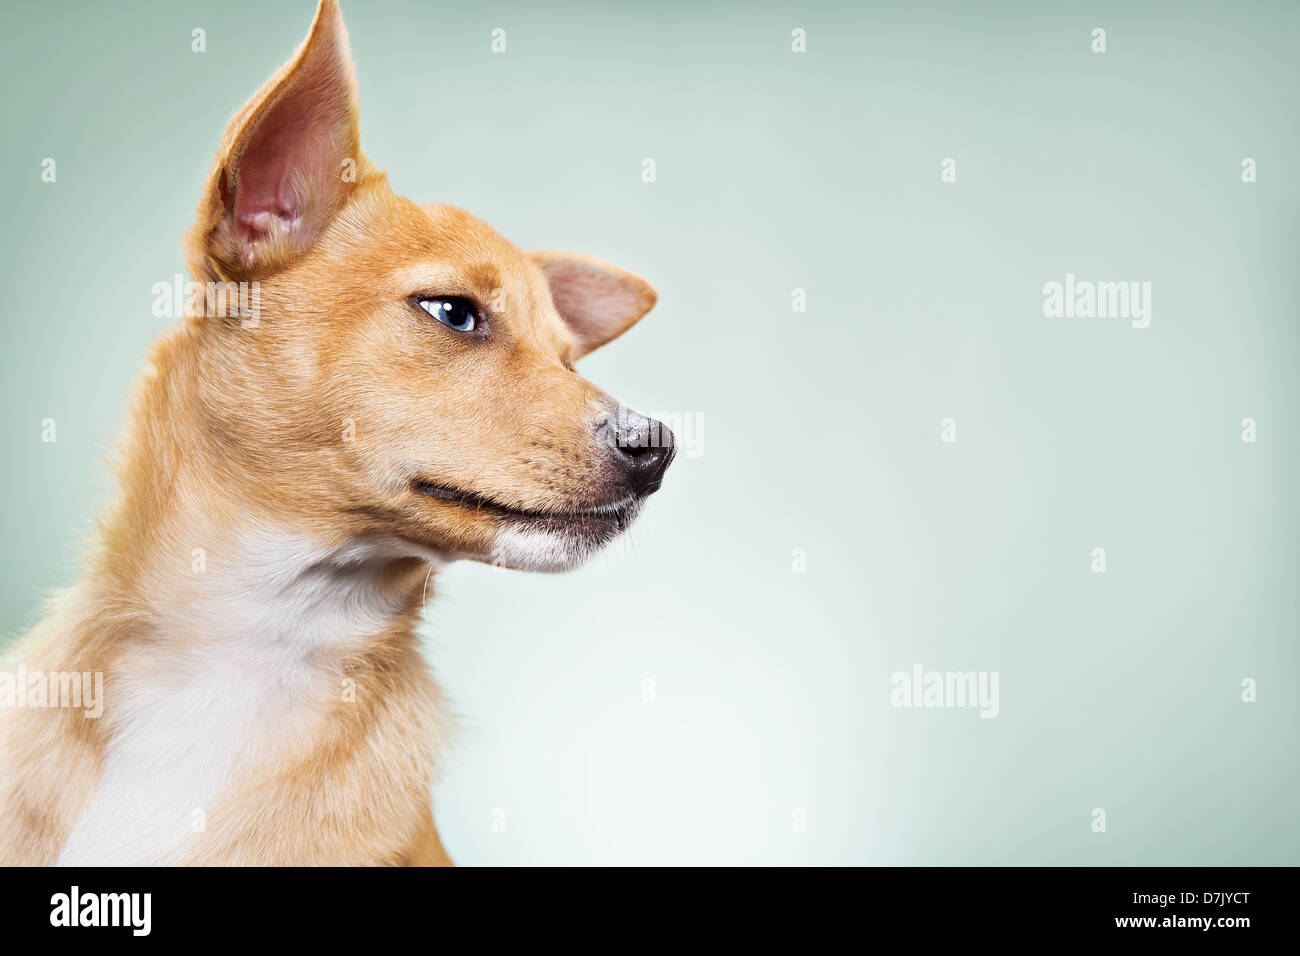 A portrait of Basenji mix breed Chihuahua in studio against green backdrop Stock Photo